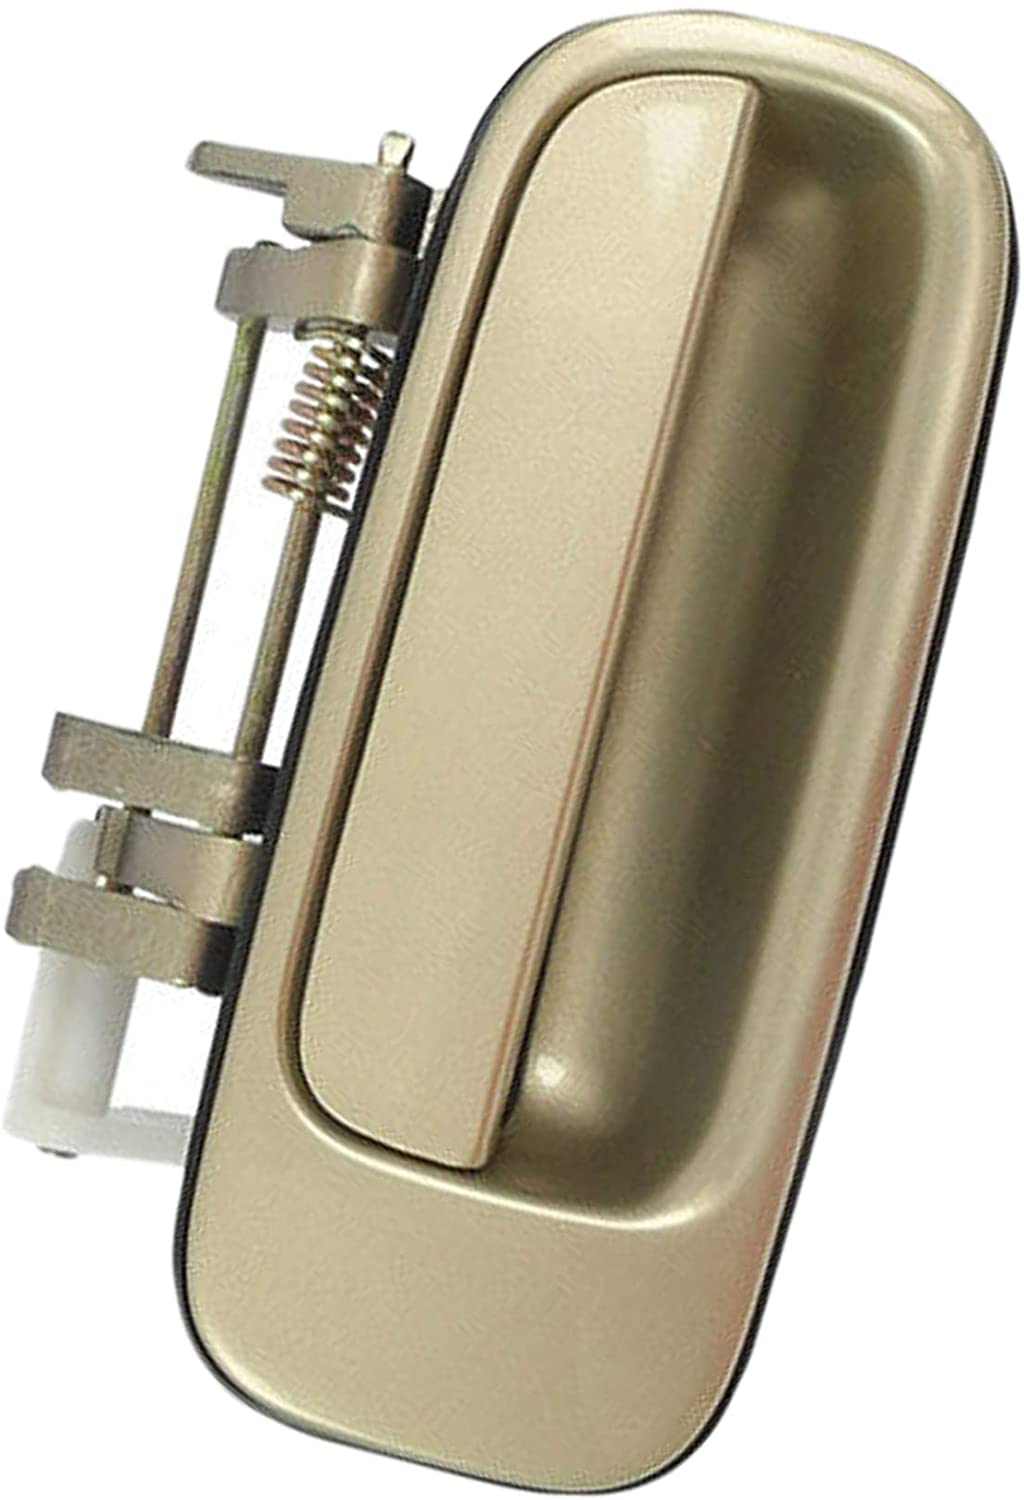 For Toyota Rear Right 1992-1996 Camry Cashmere Beige Metallic 4M9 Exterior Outside Door Handle 1992 1993 1994 1995 1996